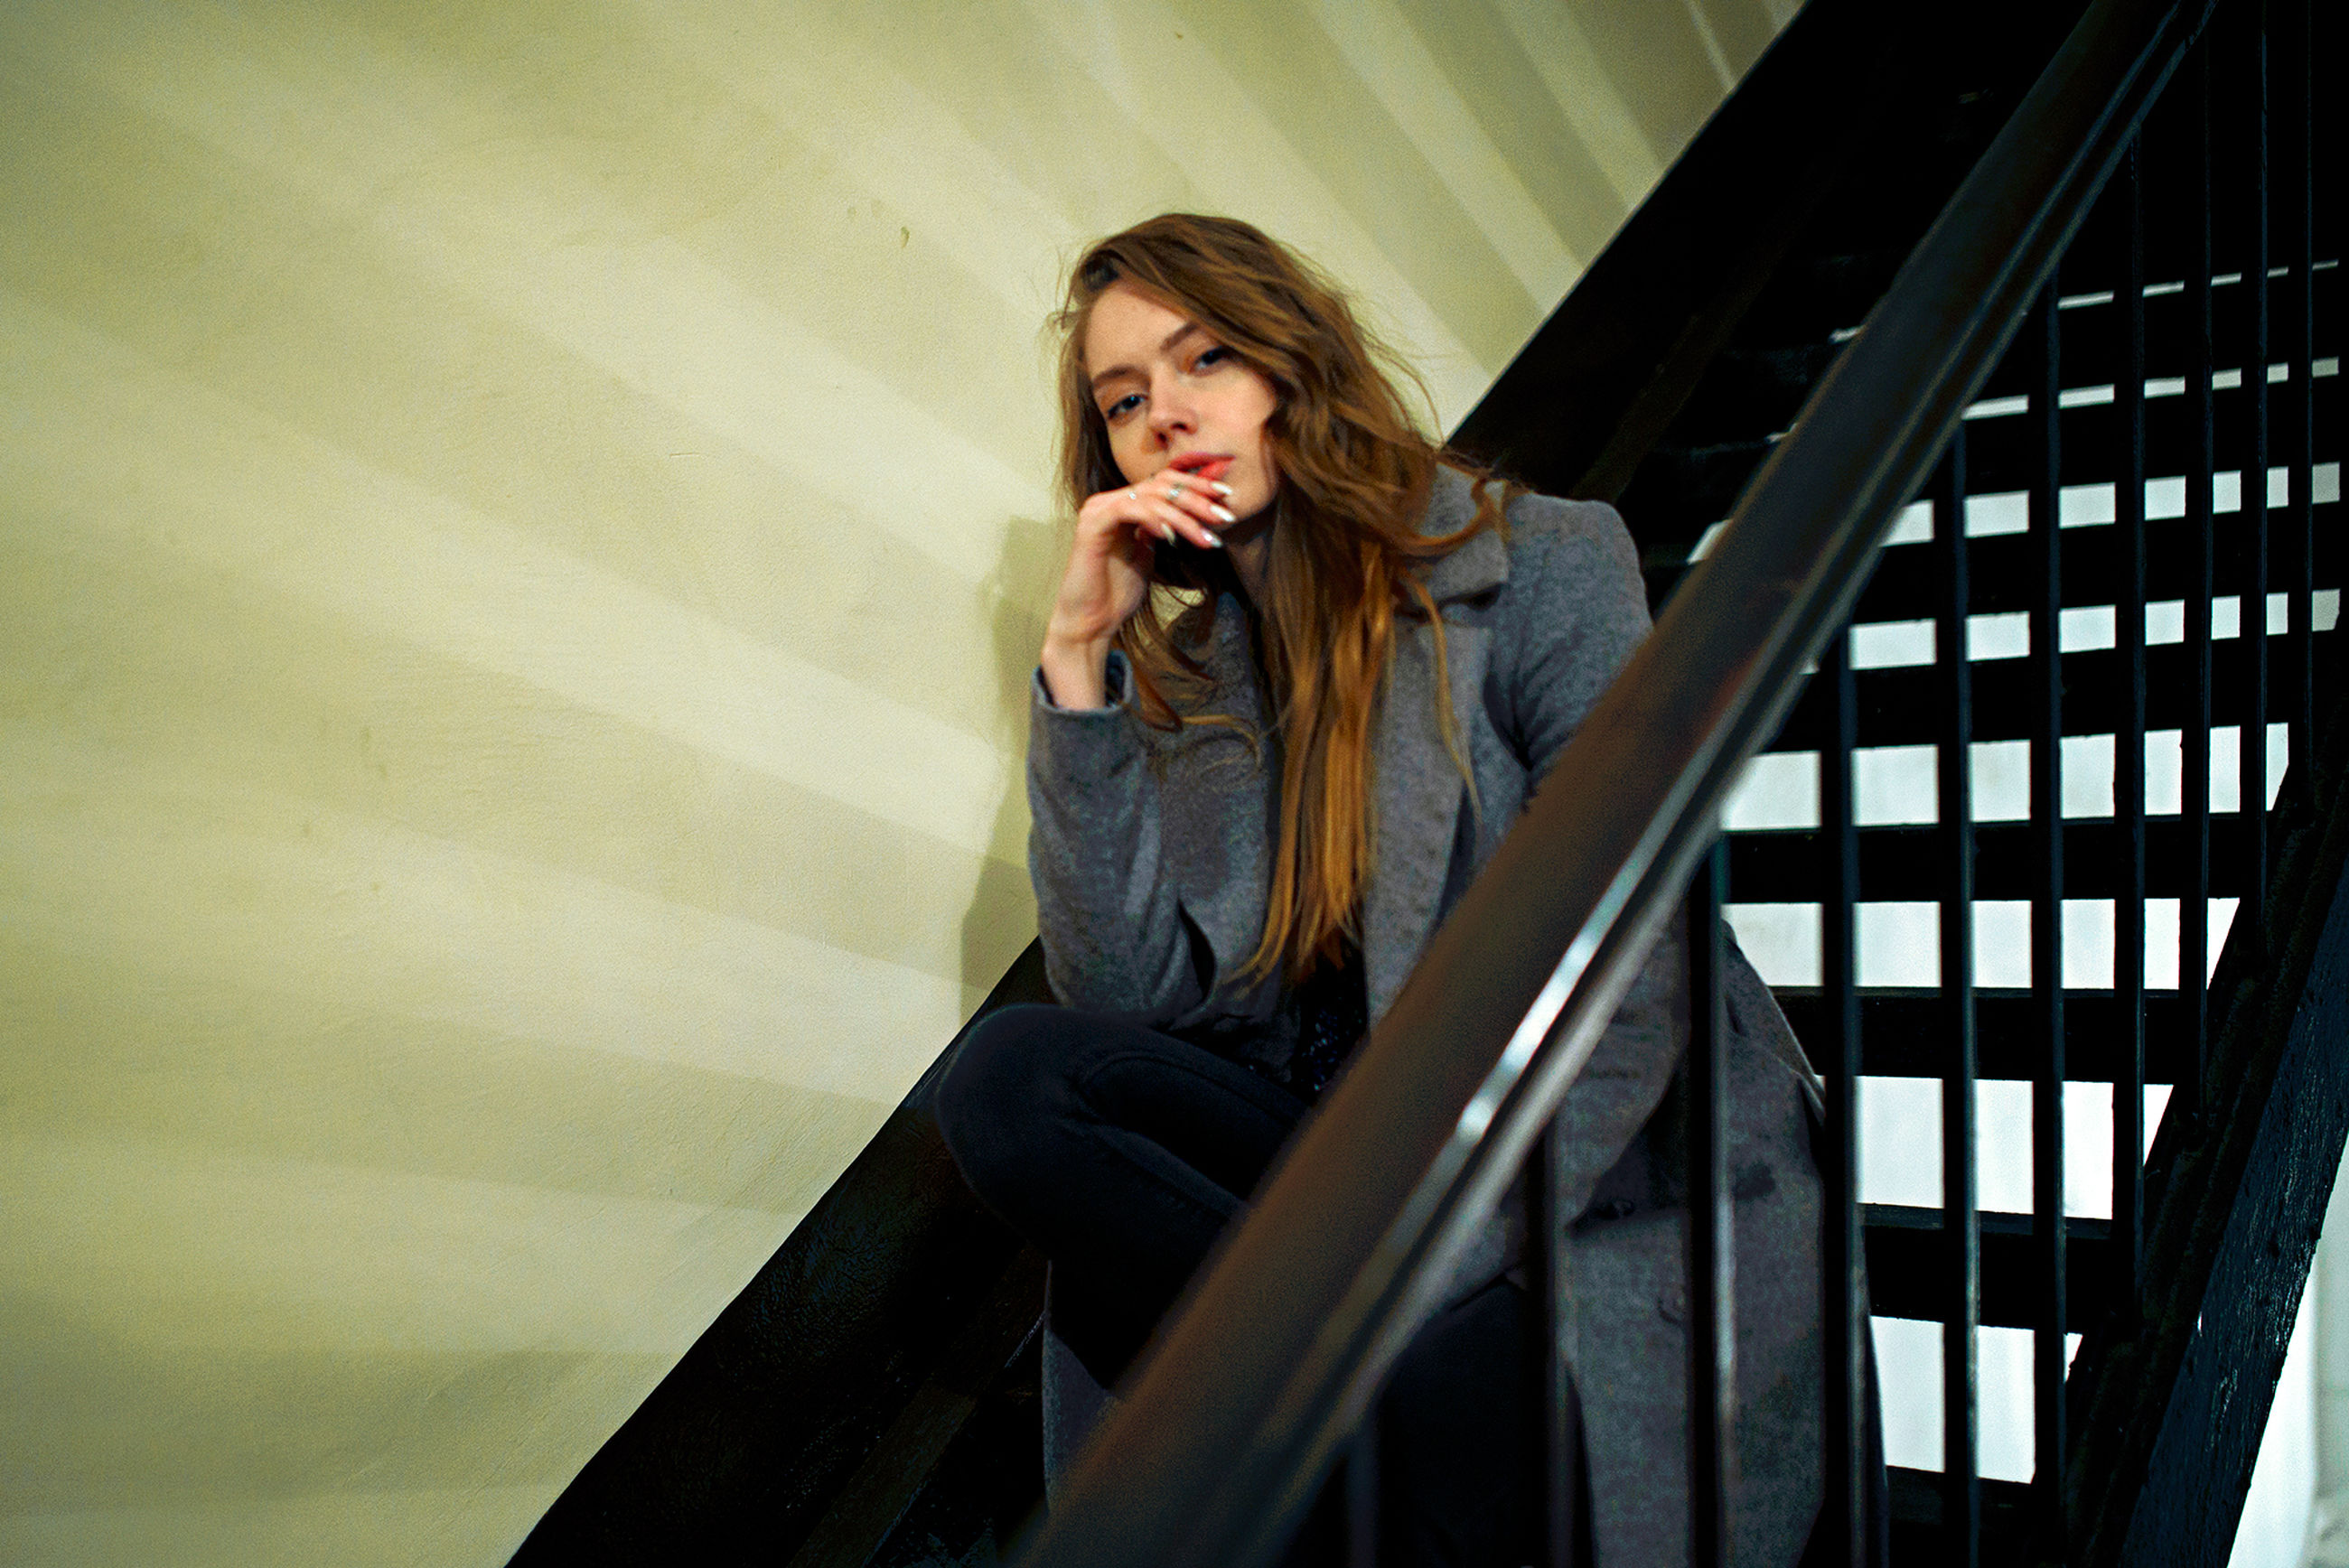 one person, real people, young adult, front view, casual clothing, sitting, lifestyles, railing, three quarter length, sadness, young women, contemplation, leisure activity, architecture, staircase, indoors, long hair, emotion, depression - sadness, teenager, hairstyle